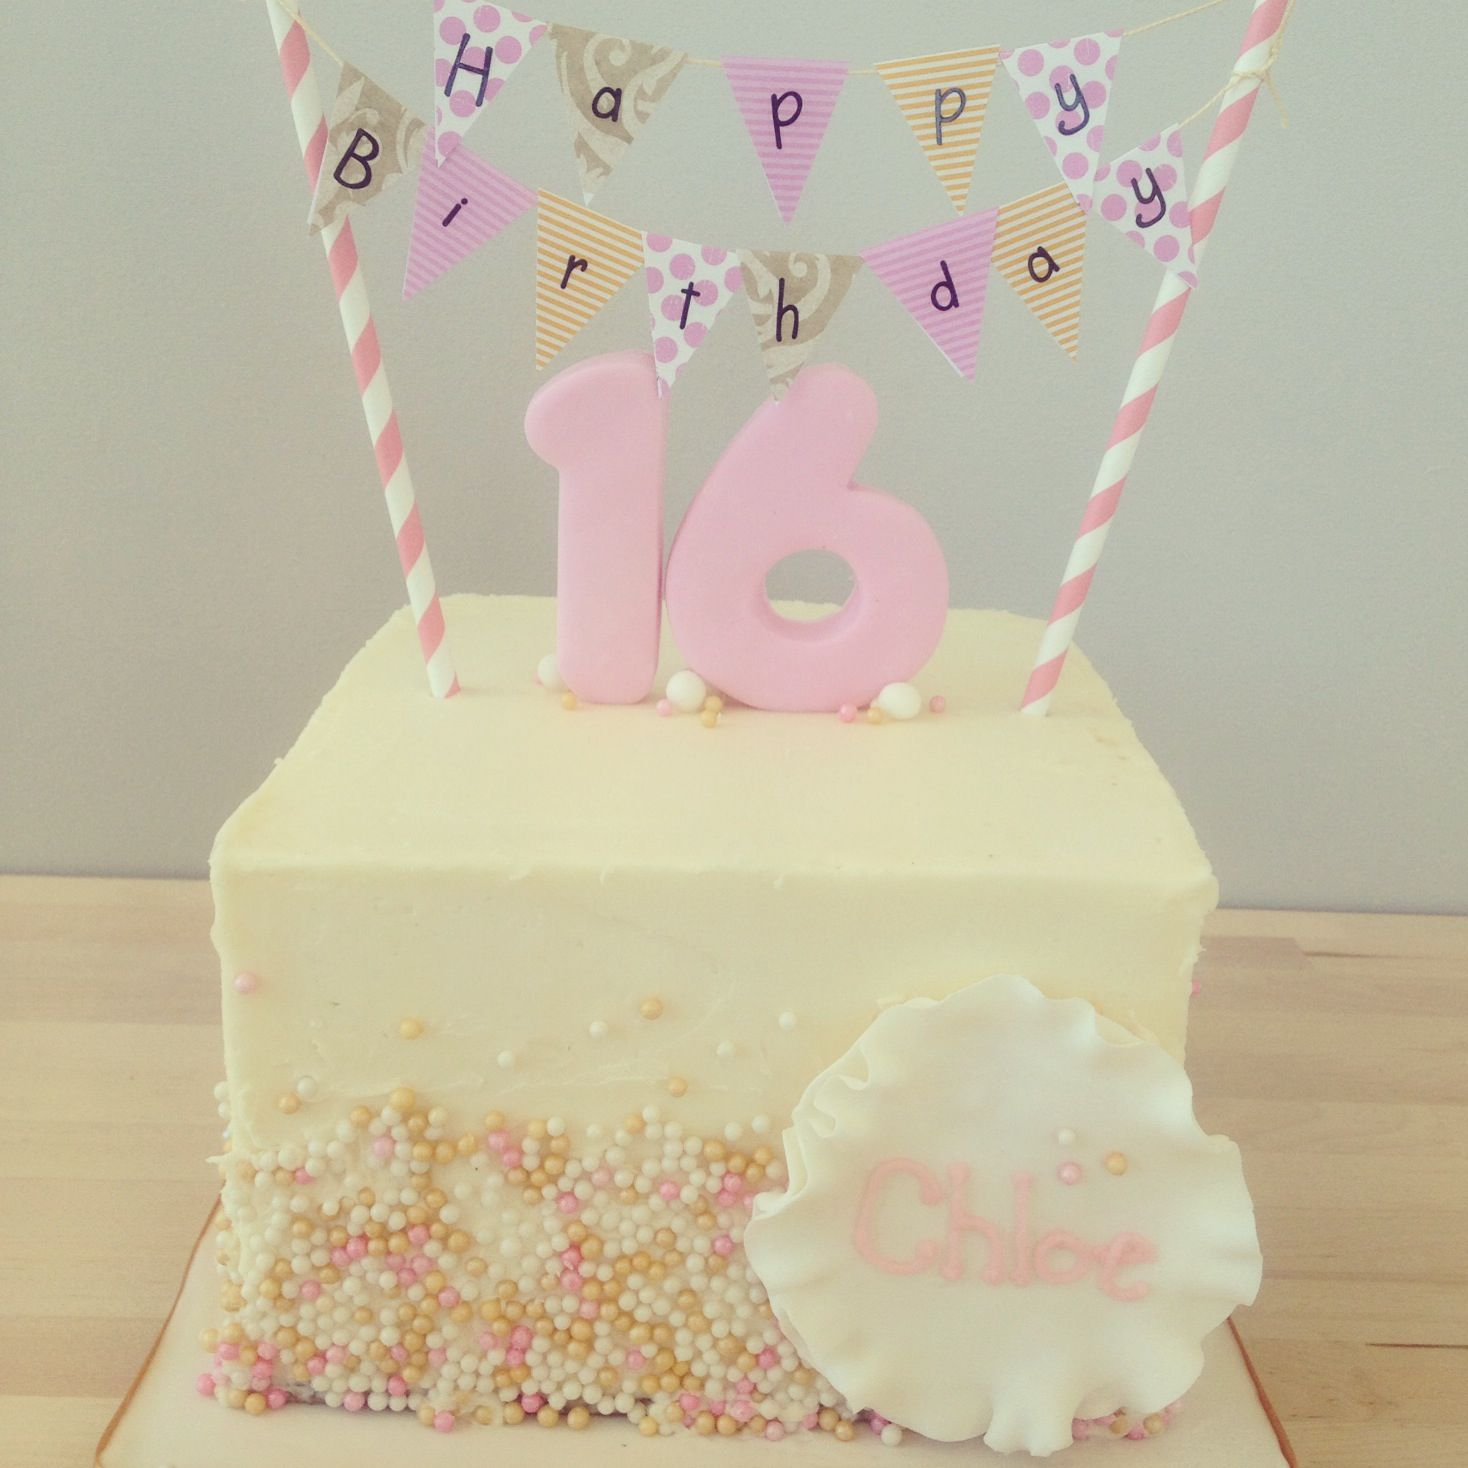 Sweet 16 birthday cake SO cute Melanie Bauer Belveal either of